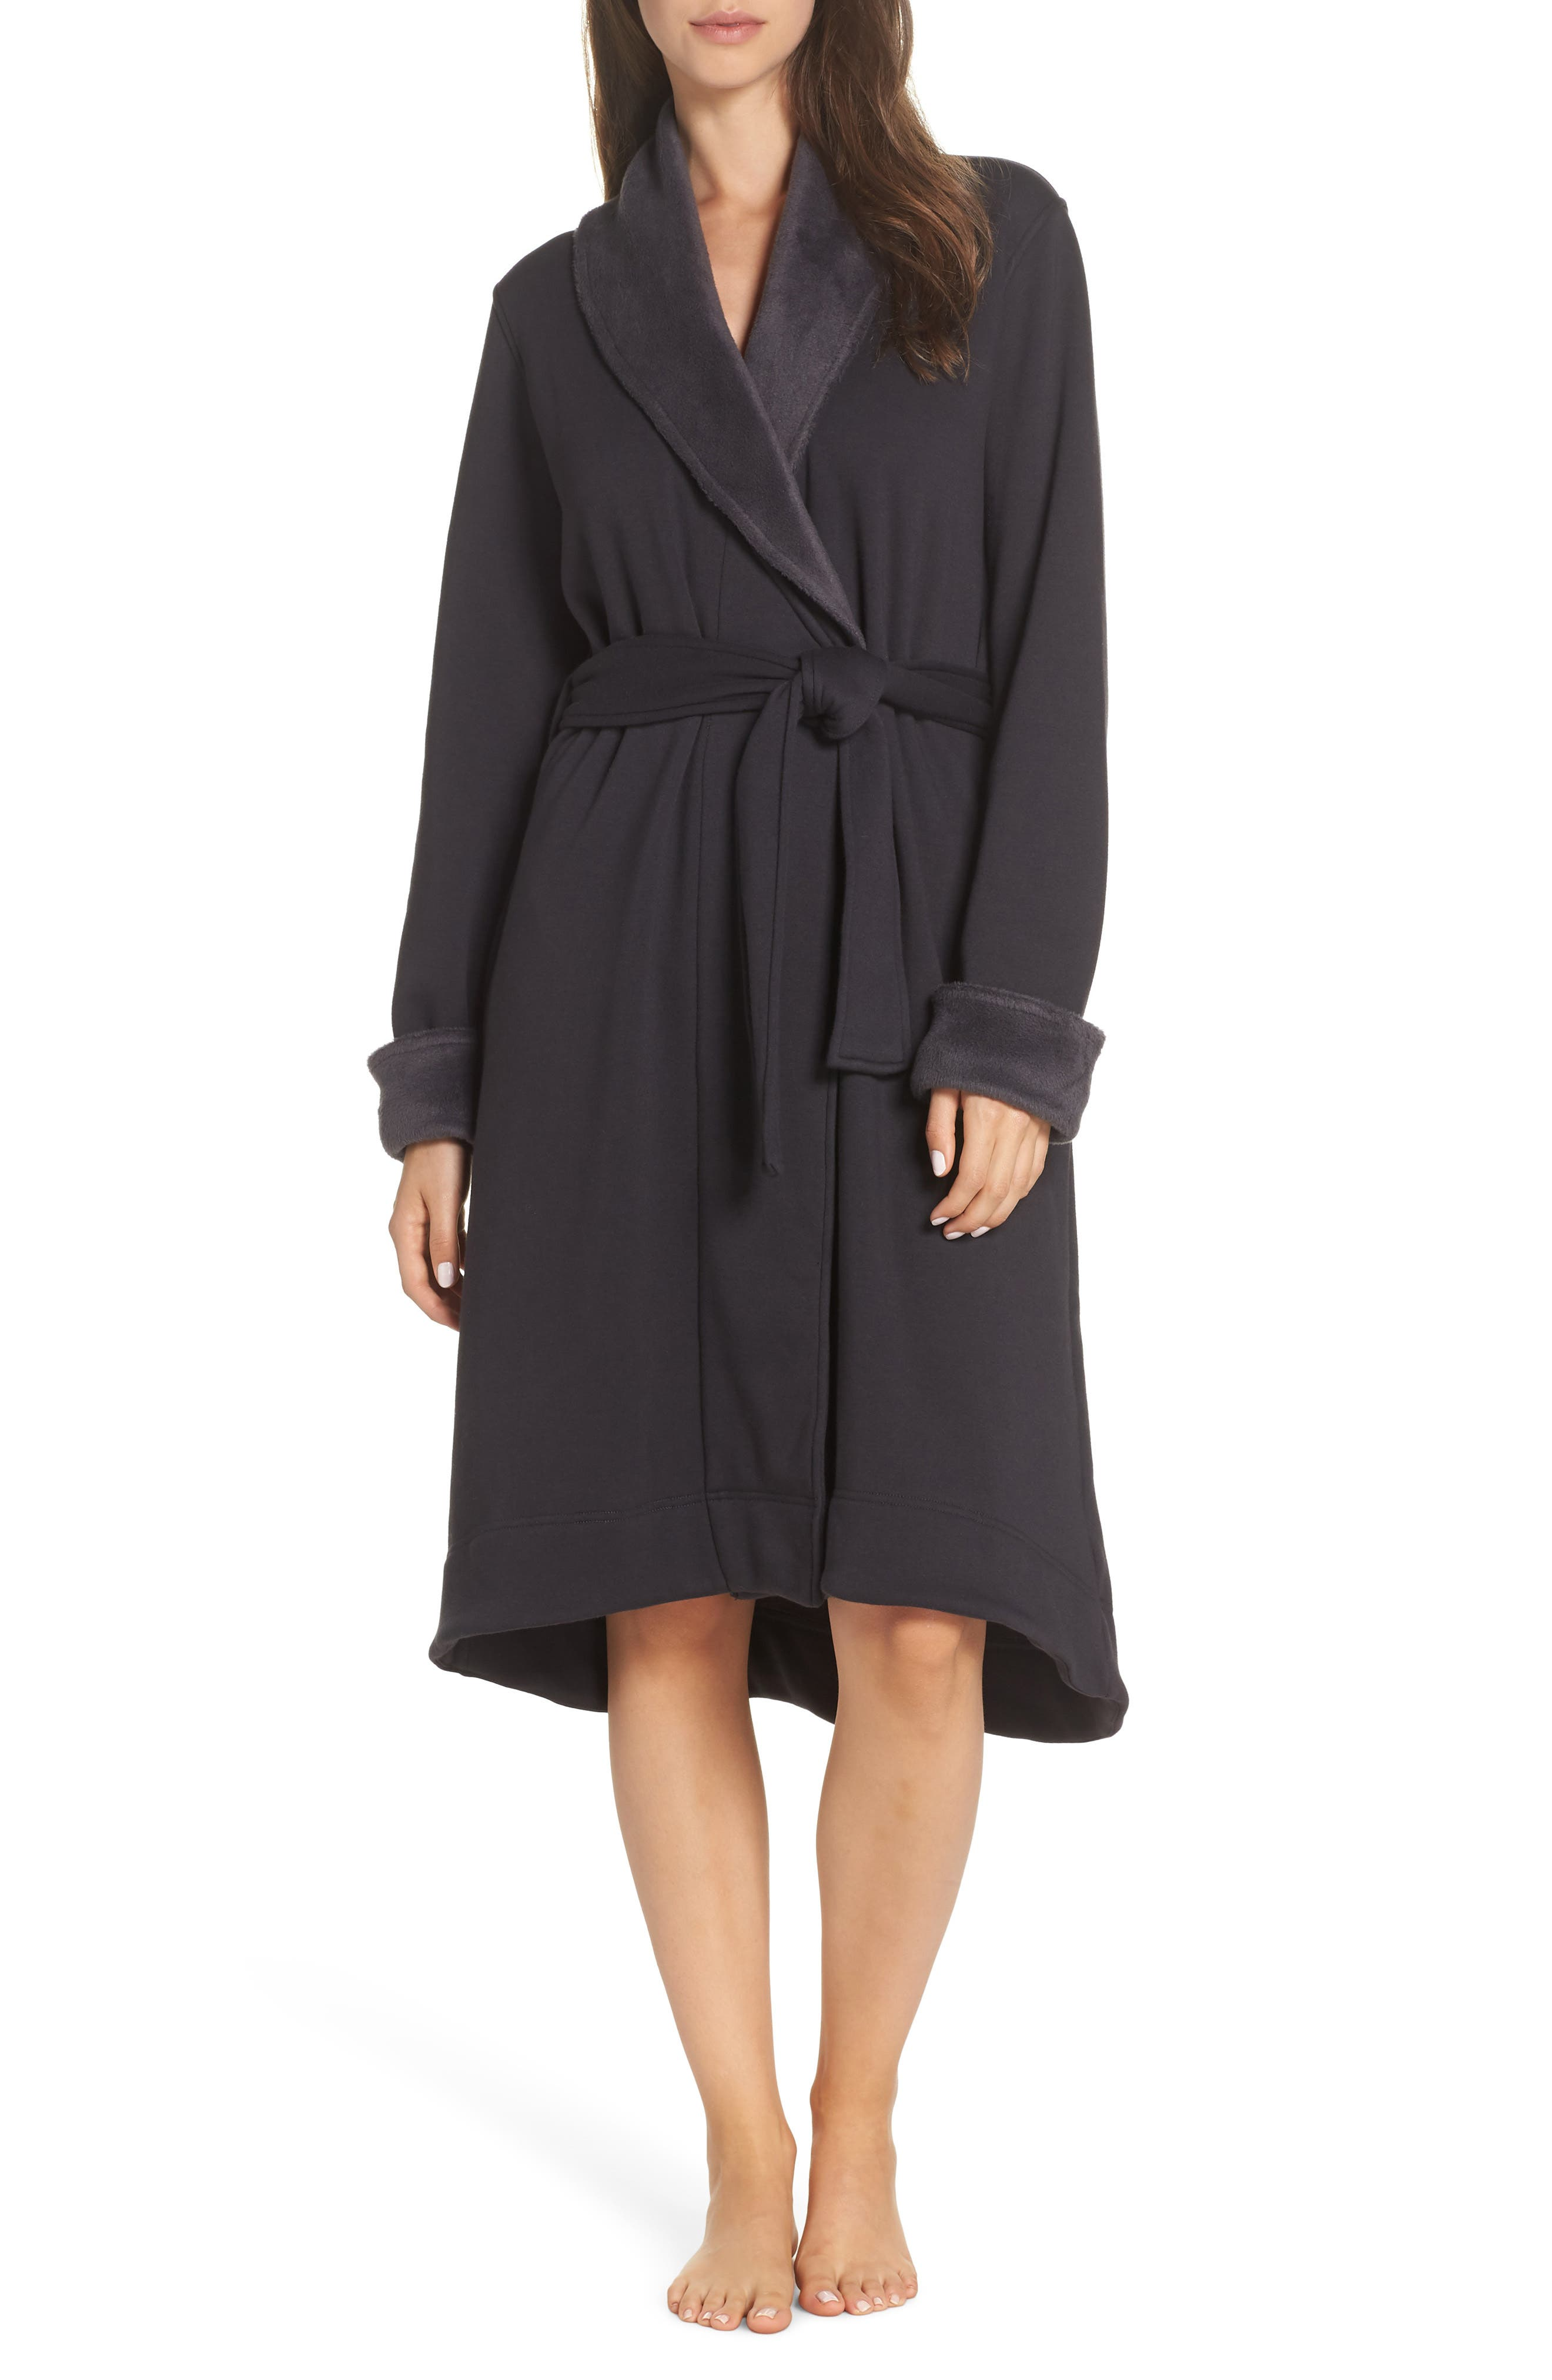 UGG<SUP>®</SUP>, Duffield II Robe, Main thumbnail 1, color, CHARCOAL